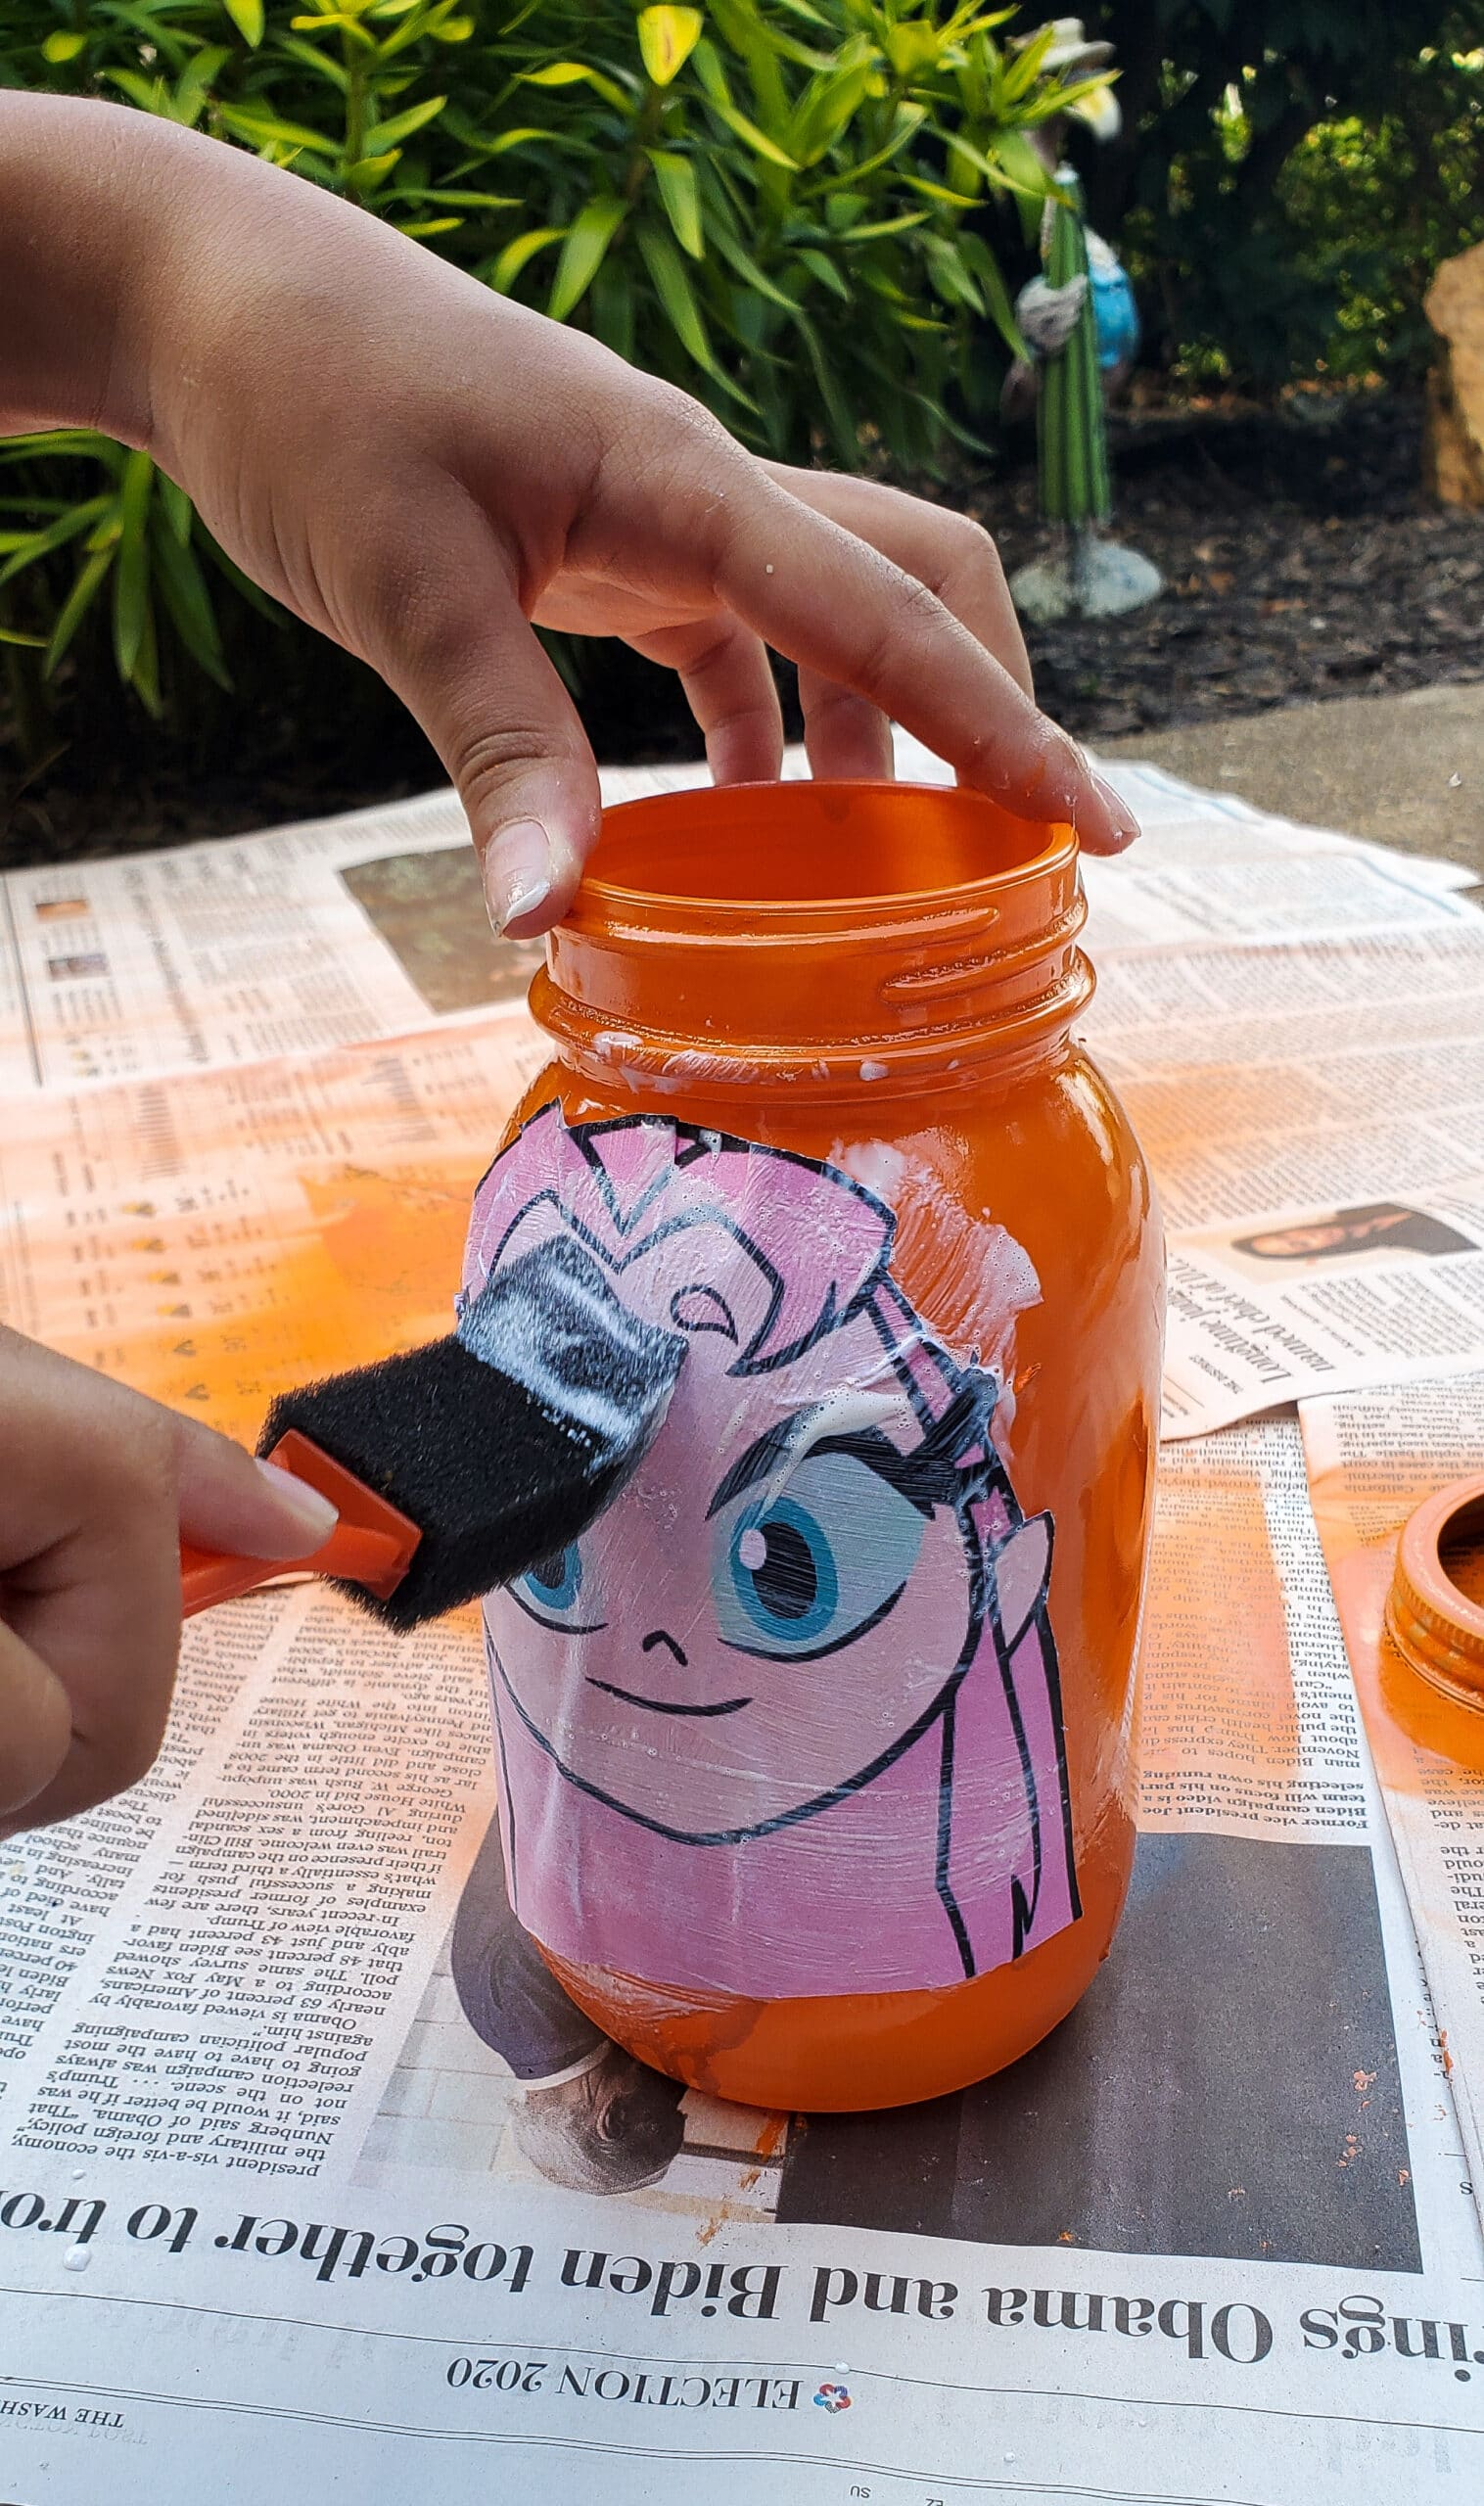 Teen Titans . Go!Character Banks Mod Podge CharacterIt's week 5 at Camp Warner Bros.! It's time to get crafty with this week's activity Teen Titans Go! Vs. Teen Titans Character Banks. Grab your printables on my blog, along with some more supplies to create your very own Teen Titans Go! vs Teen Titans Character Banks.